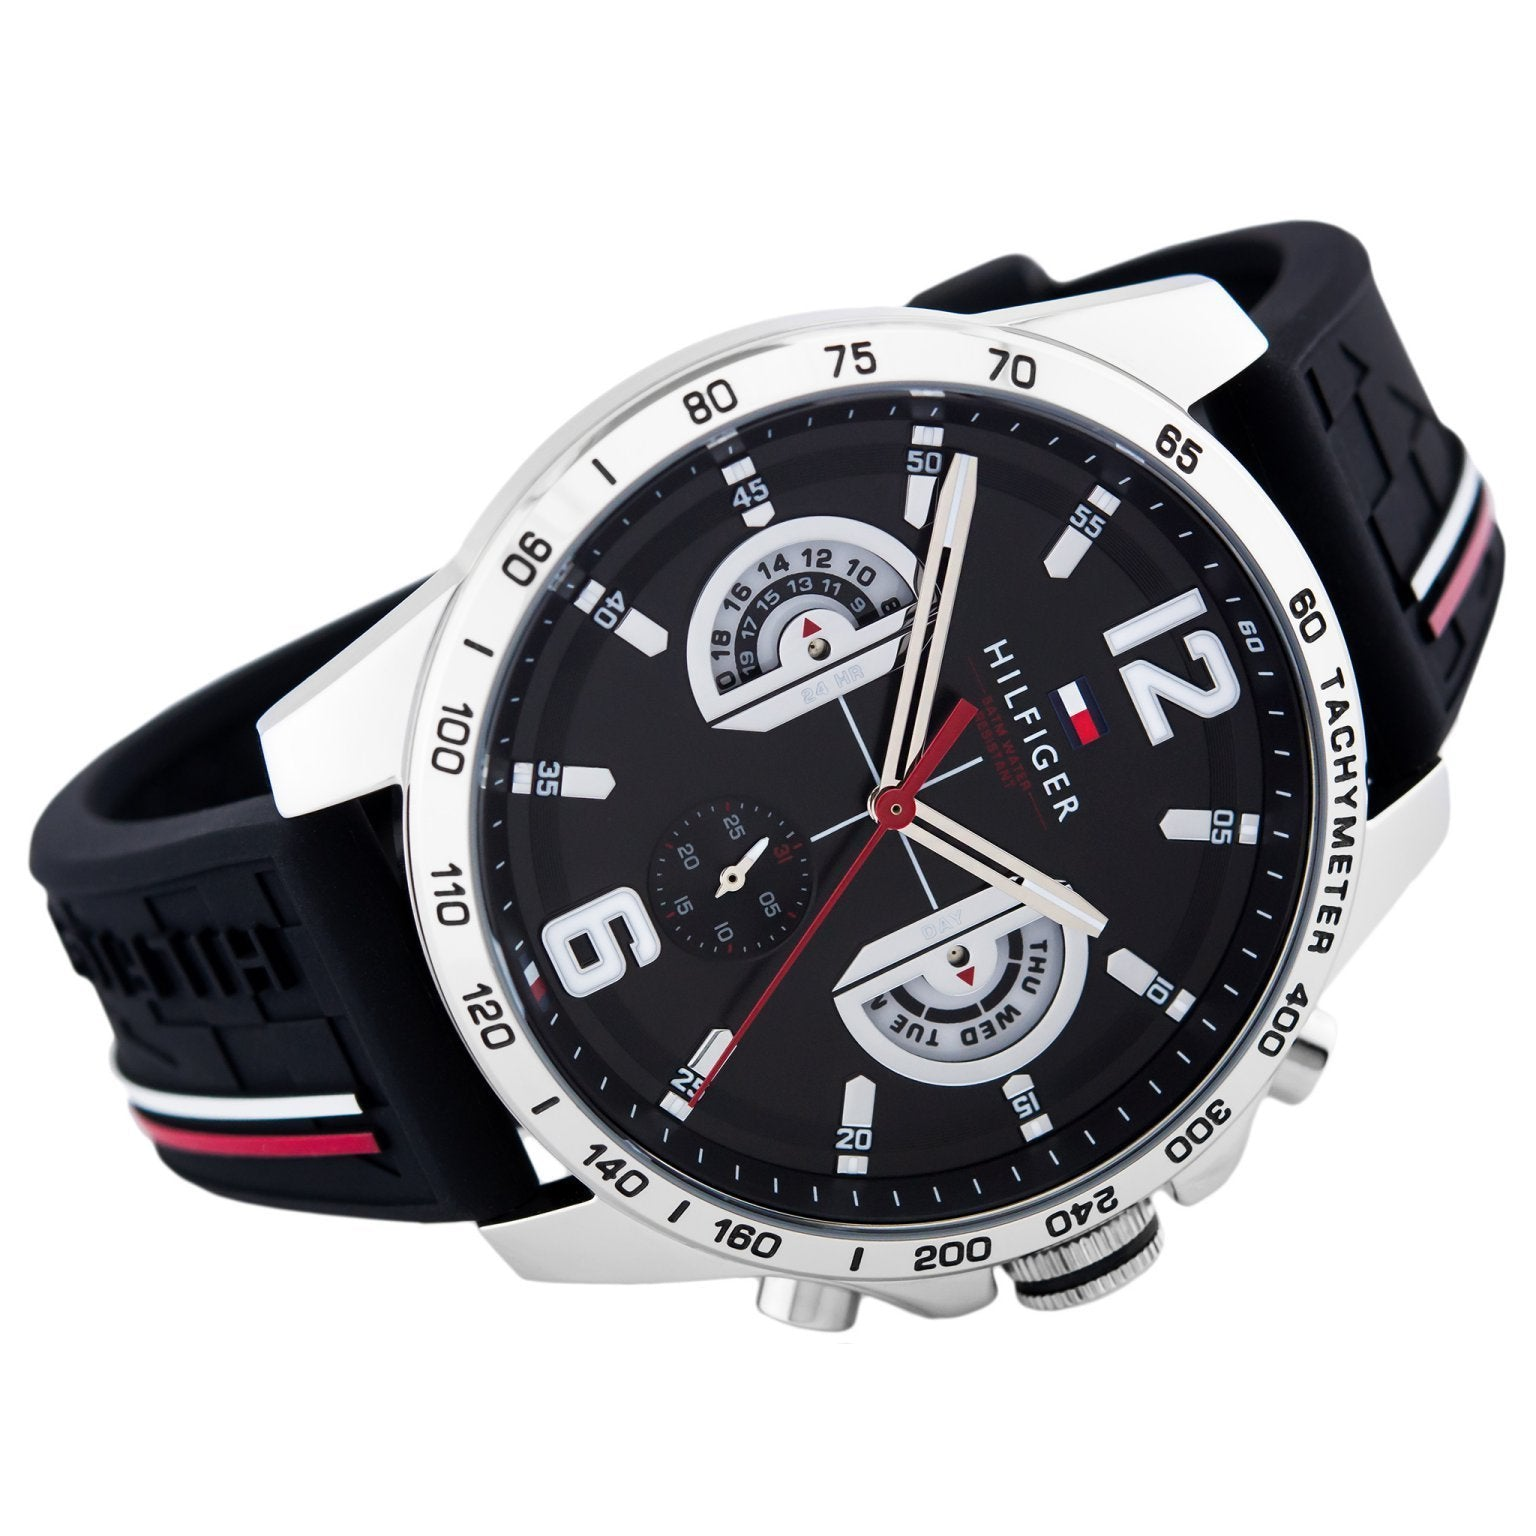 e429c057d31 Tommy Hilfiger Men s Black Sports Watch - 1791473 – The Watch ...